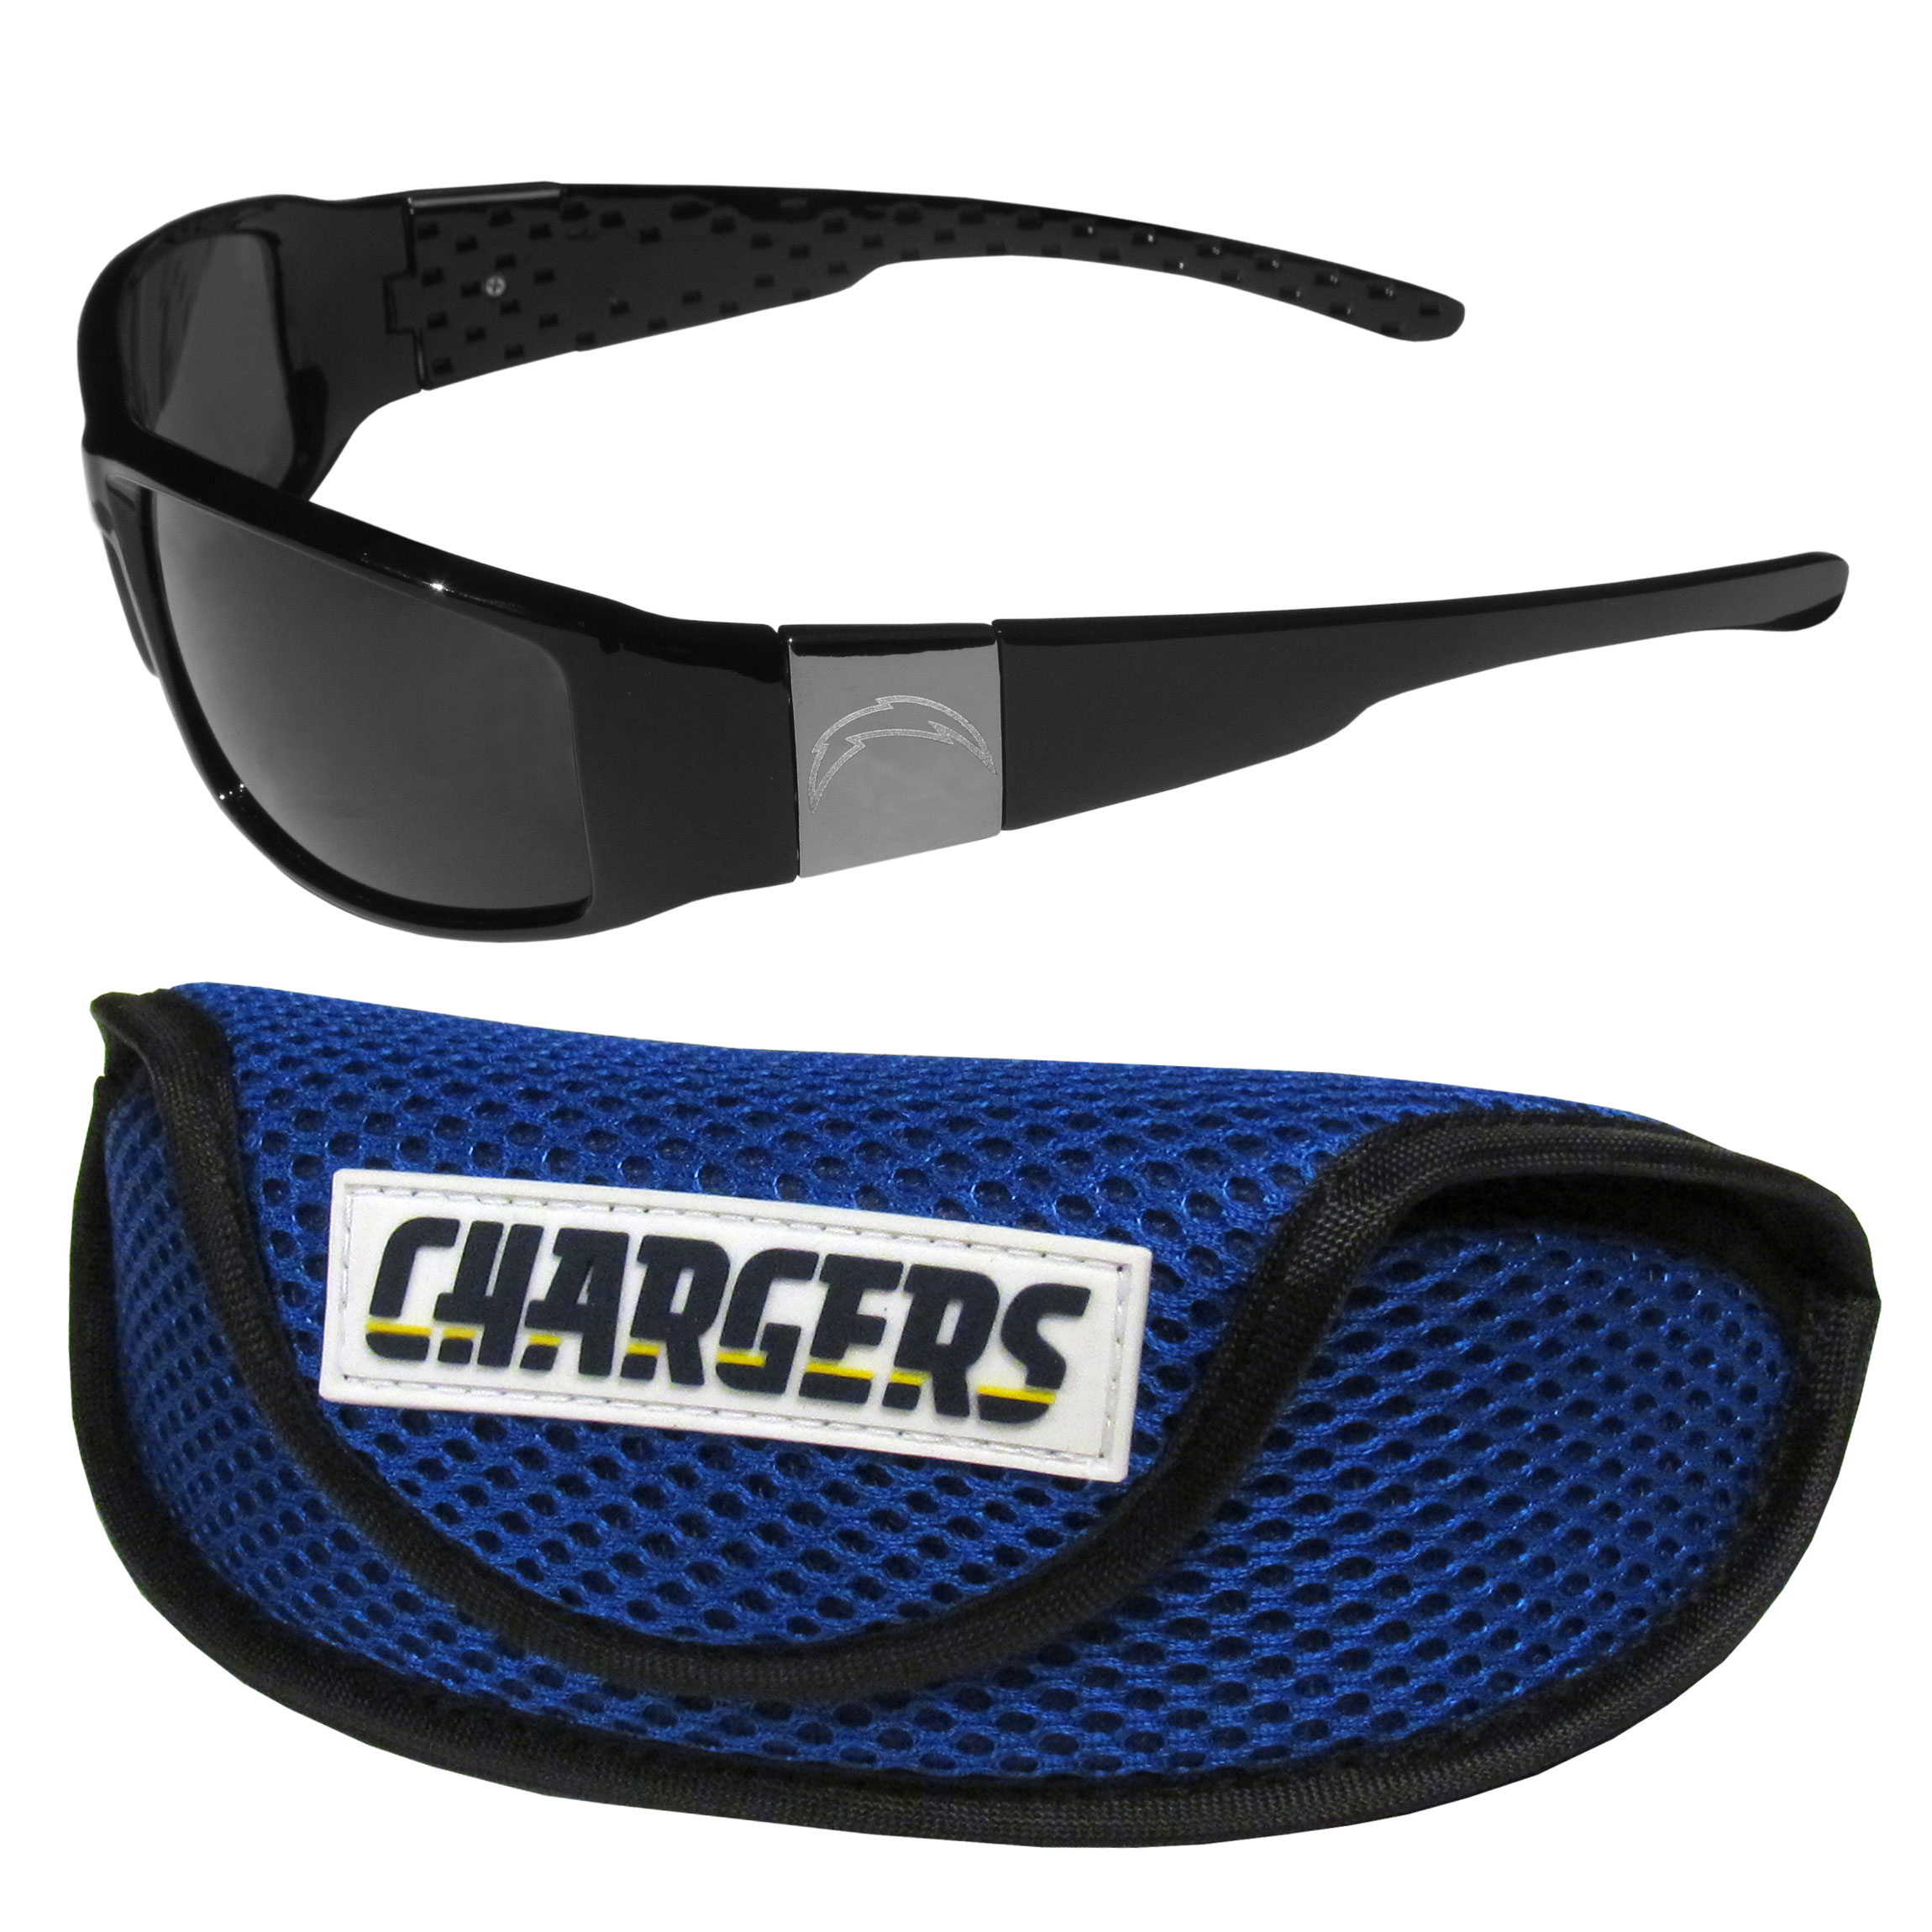 Los Angeles Chargers Chrome Wrap Sunglasses and Sports Case - Our sleek and stylish Los Angeles Chargers chrome wrap sunglasses and our sporty mesh case. The sunglasses feature etched team logos on each arm and 100% UVA/UVB protection. The case features a large and colorful team emblem.